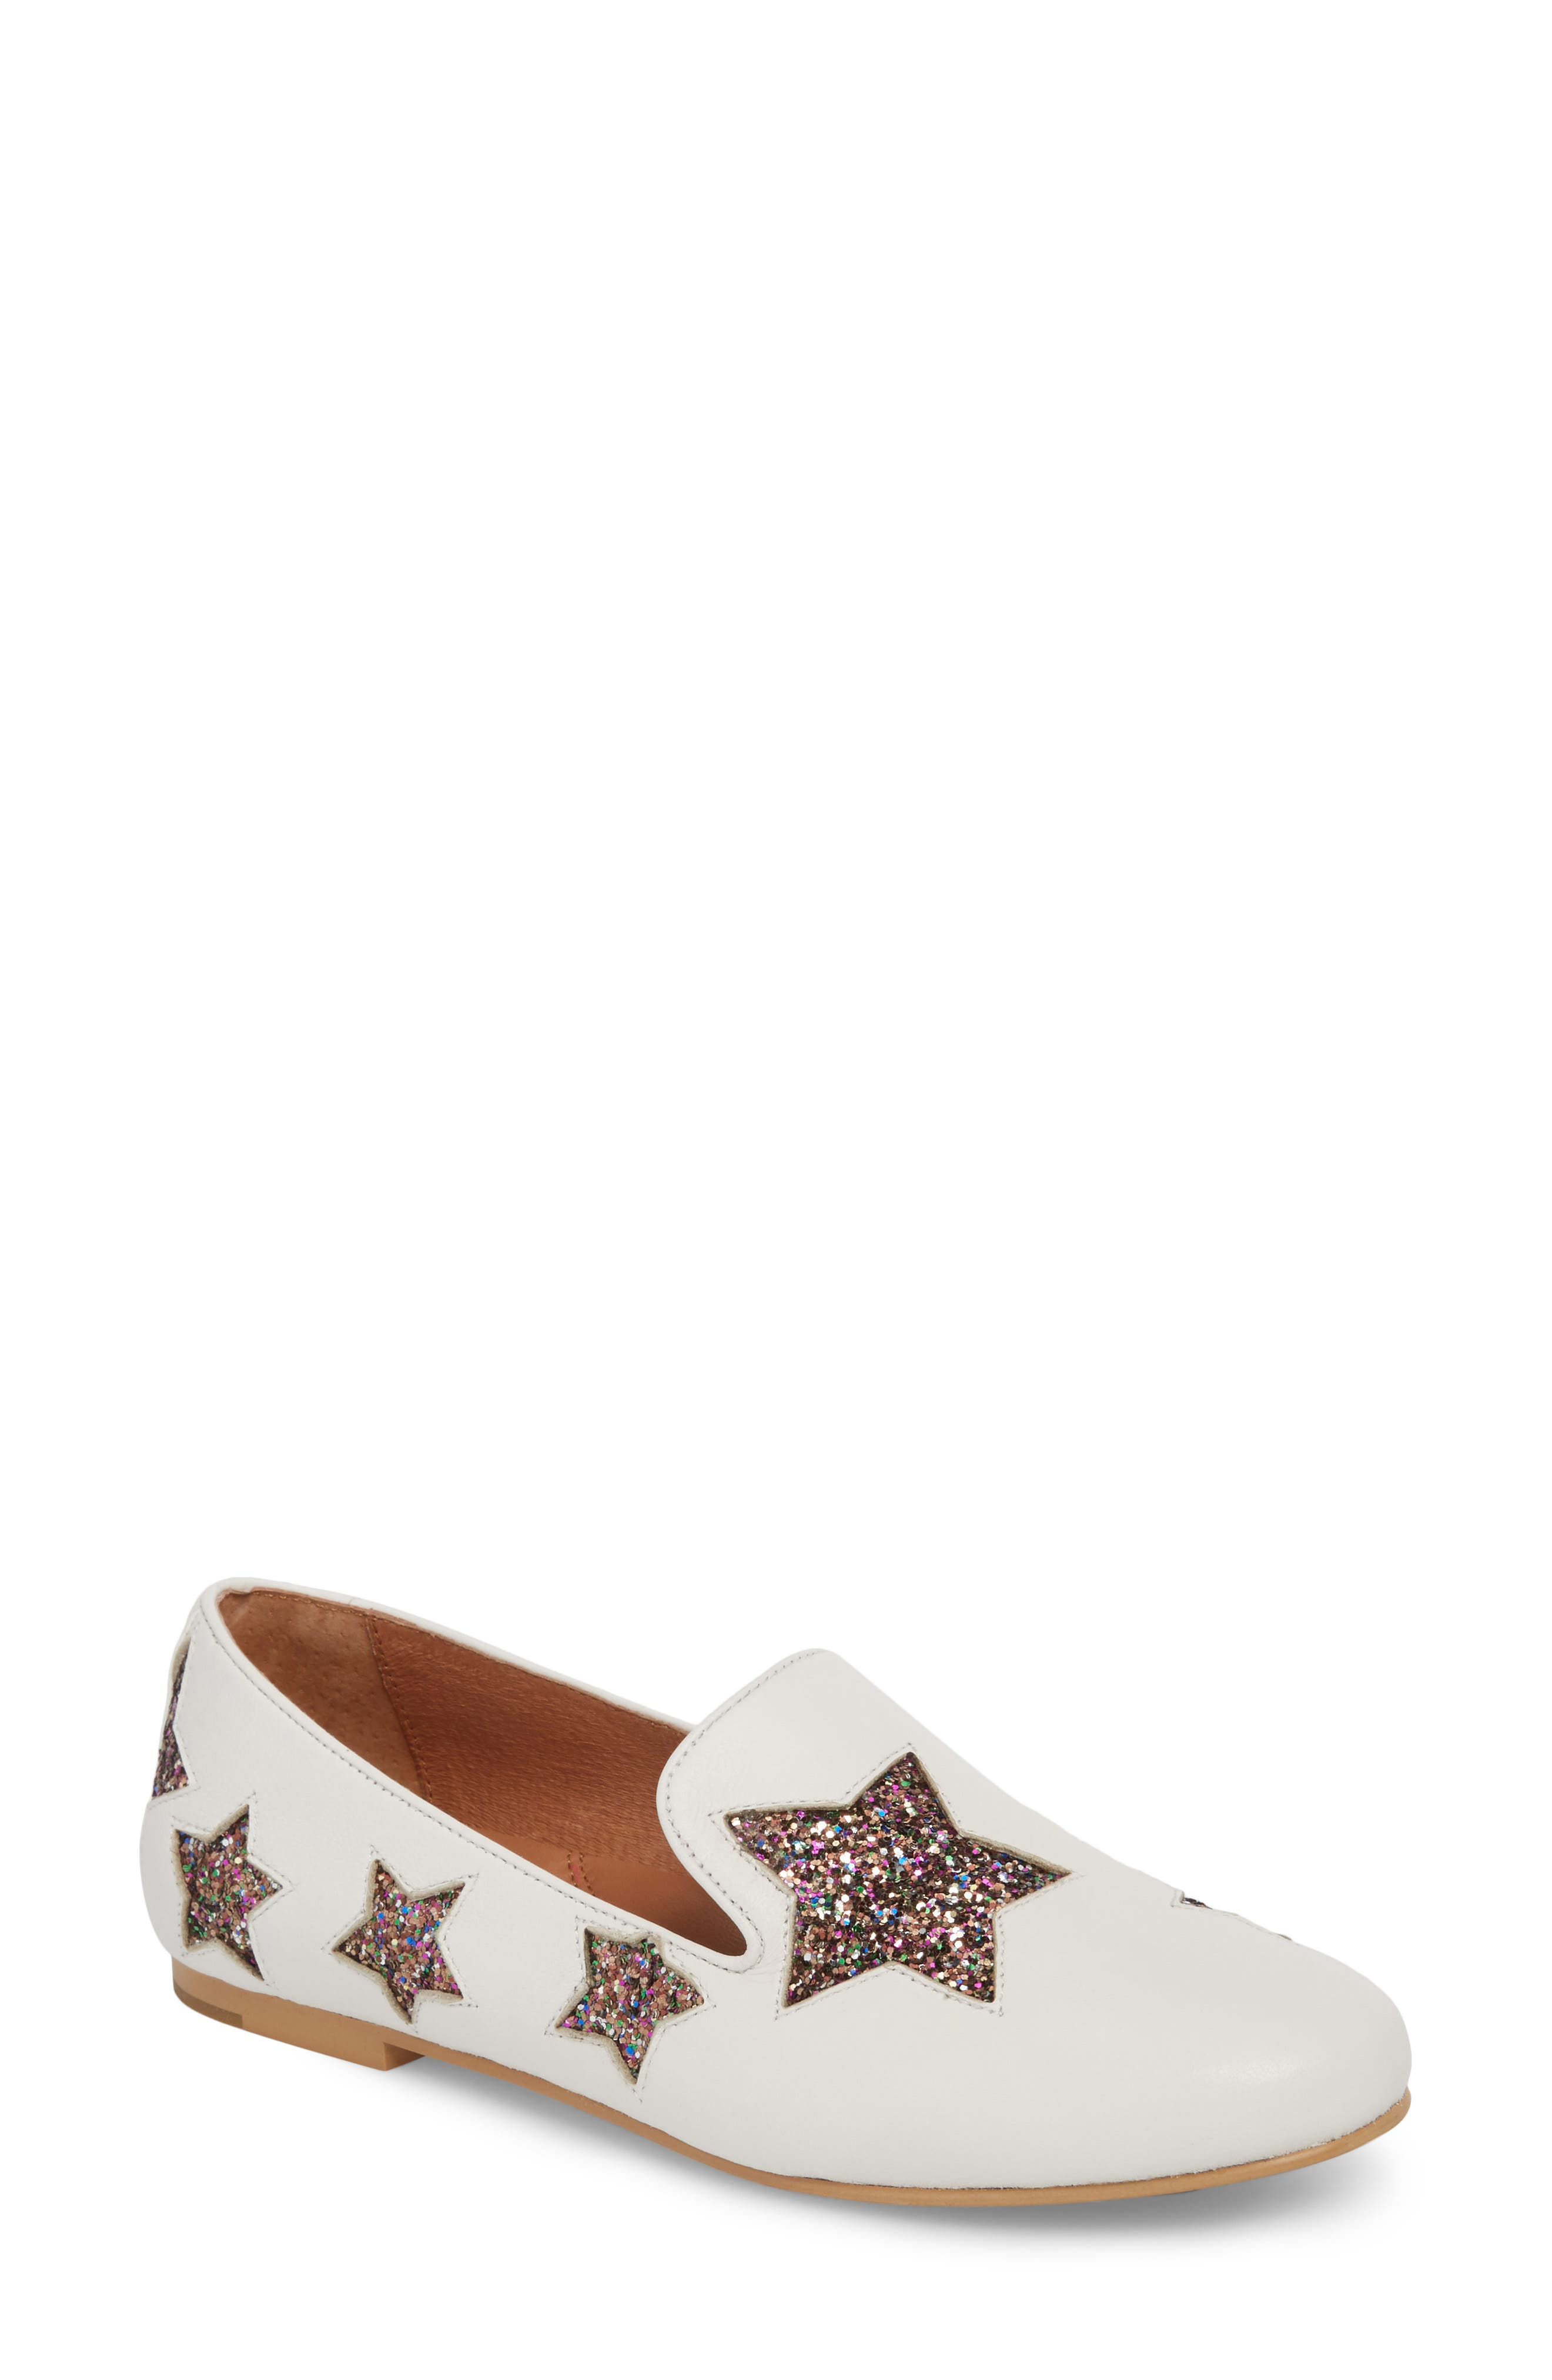 GENTLE SOULS BY KENNETH COLE, Eugene Stars Flat, Main thumbnail 1, color, WHITE STARS LEATHER